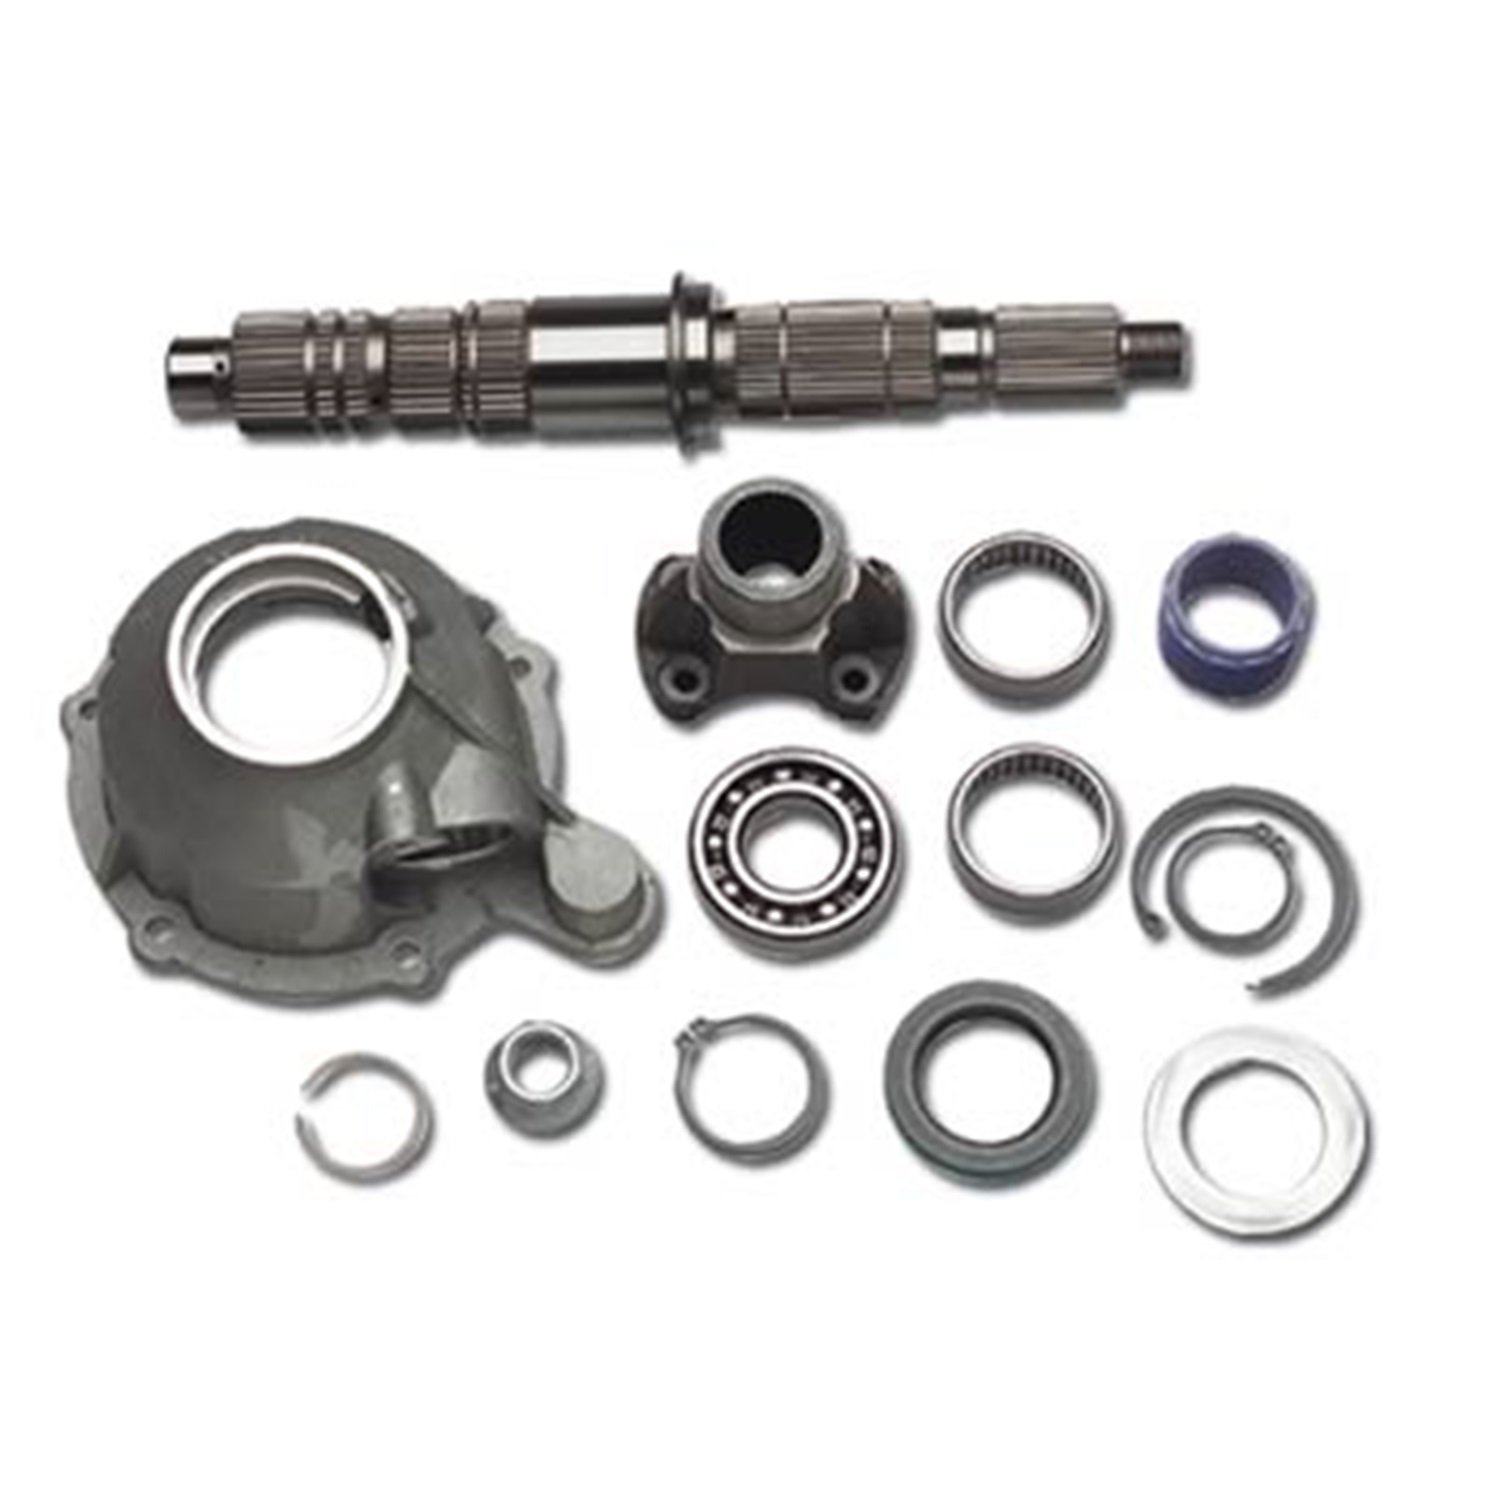 Explorer Pro Comp 4007 Tailshaft Conversion Kit Pro Comp Suspension